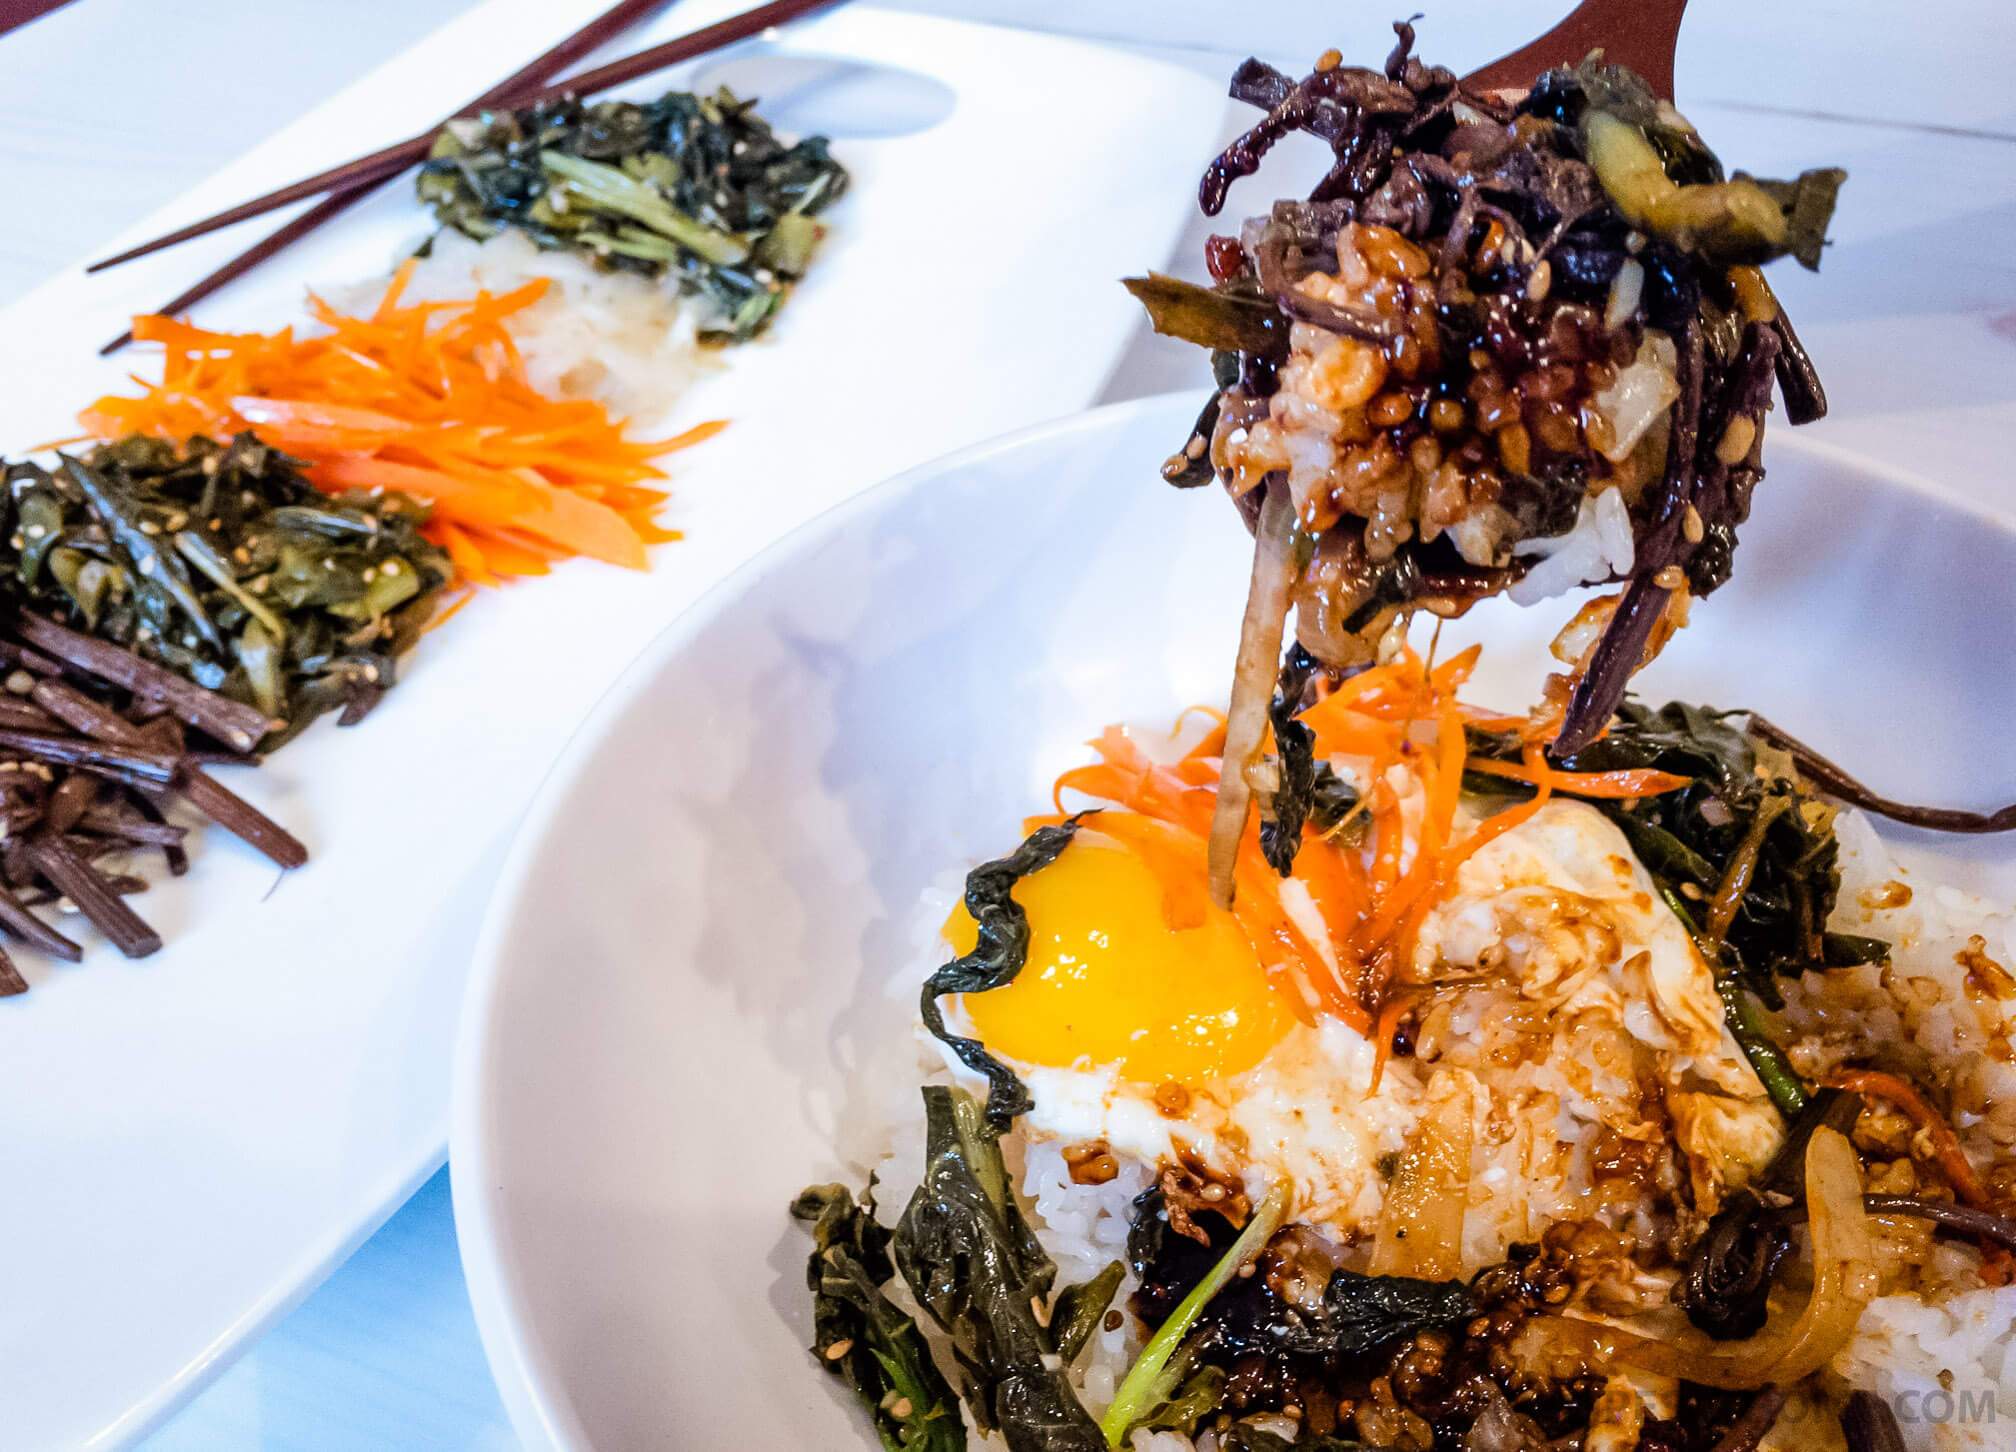 This version of Korean bibimbap is full of a variety of vegetables, including poke salad (sallet), with a fried egg on top and drizzled with a spicy gochujang sauce.